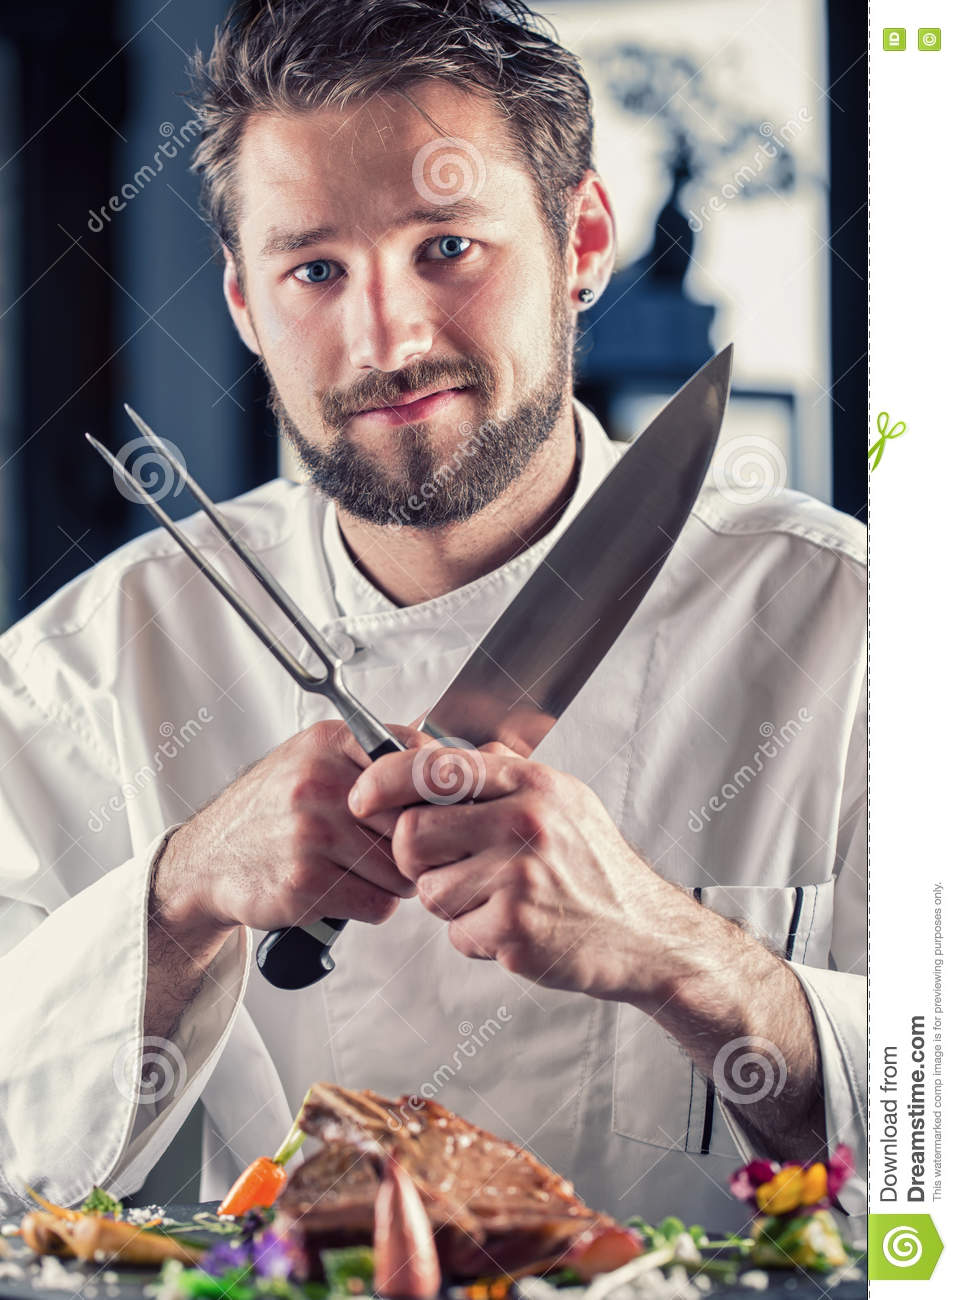 Chef Chef Funny Chef With Knife And Fork Arms Crossed